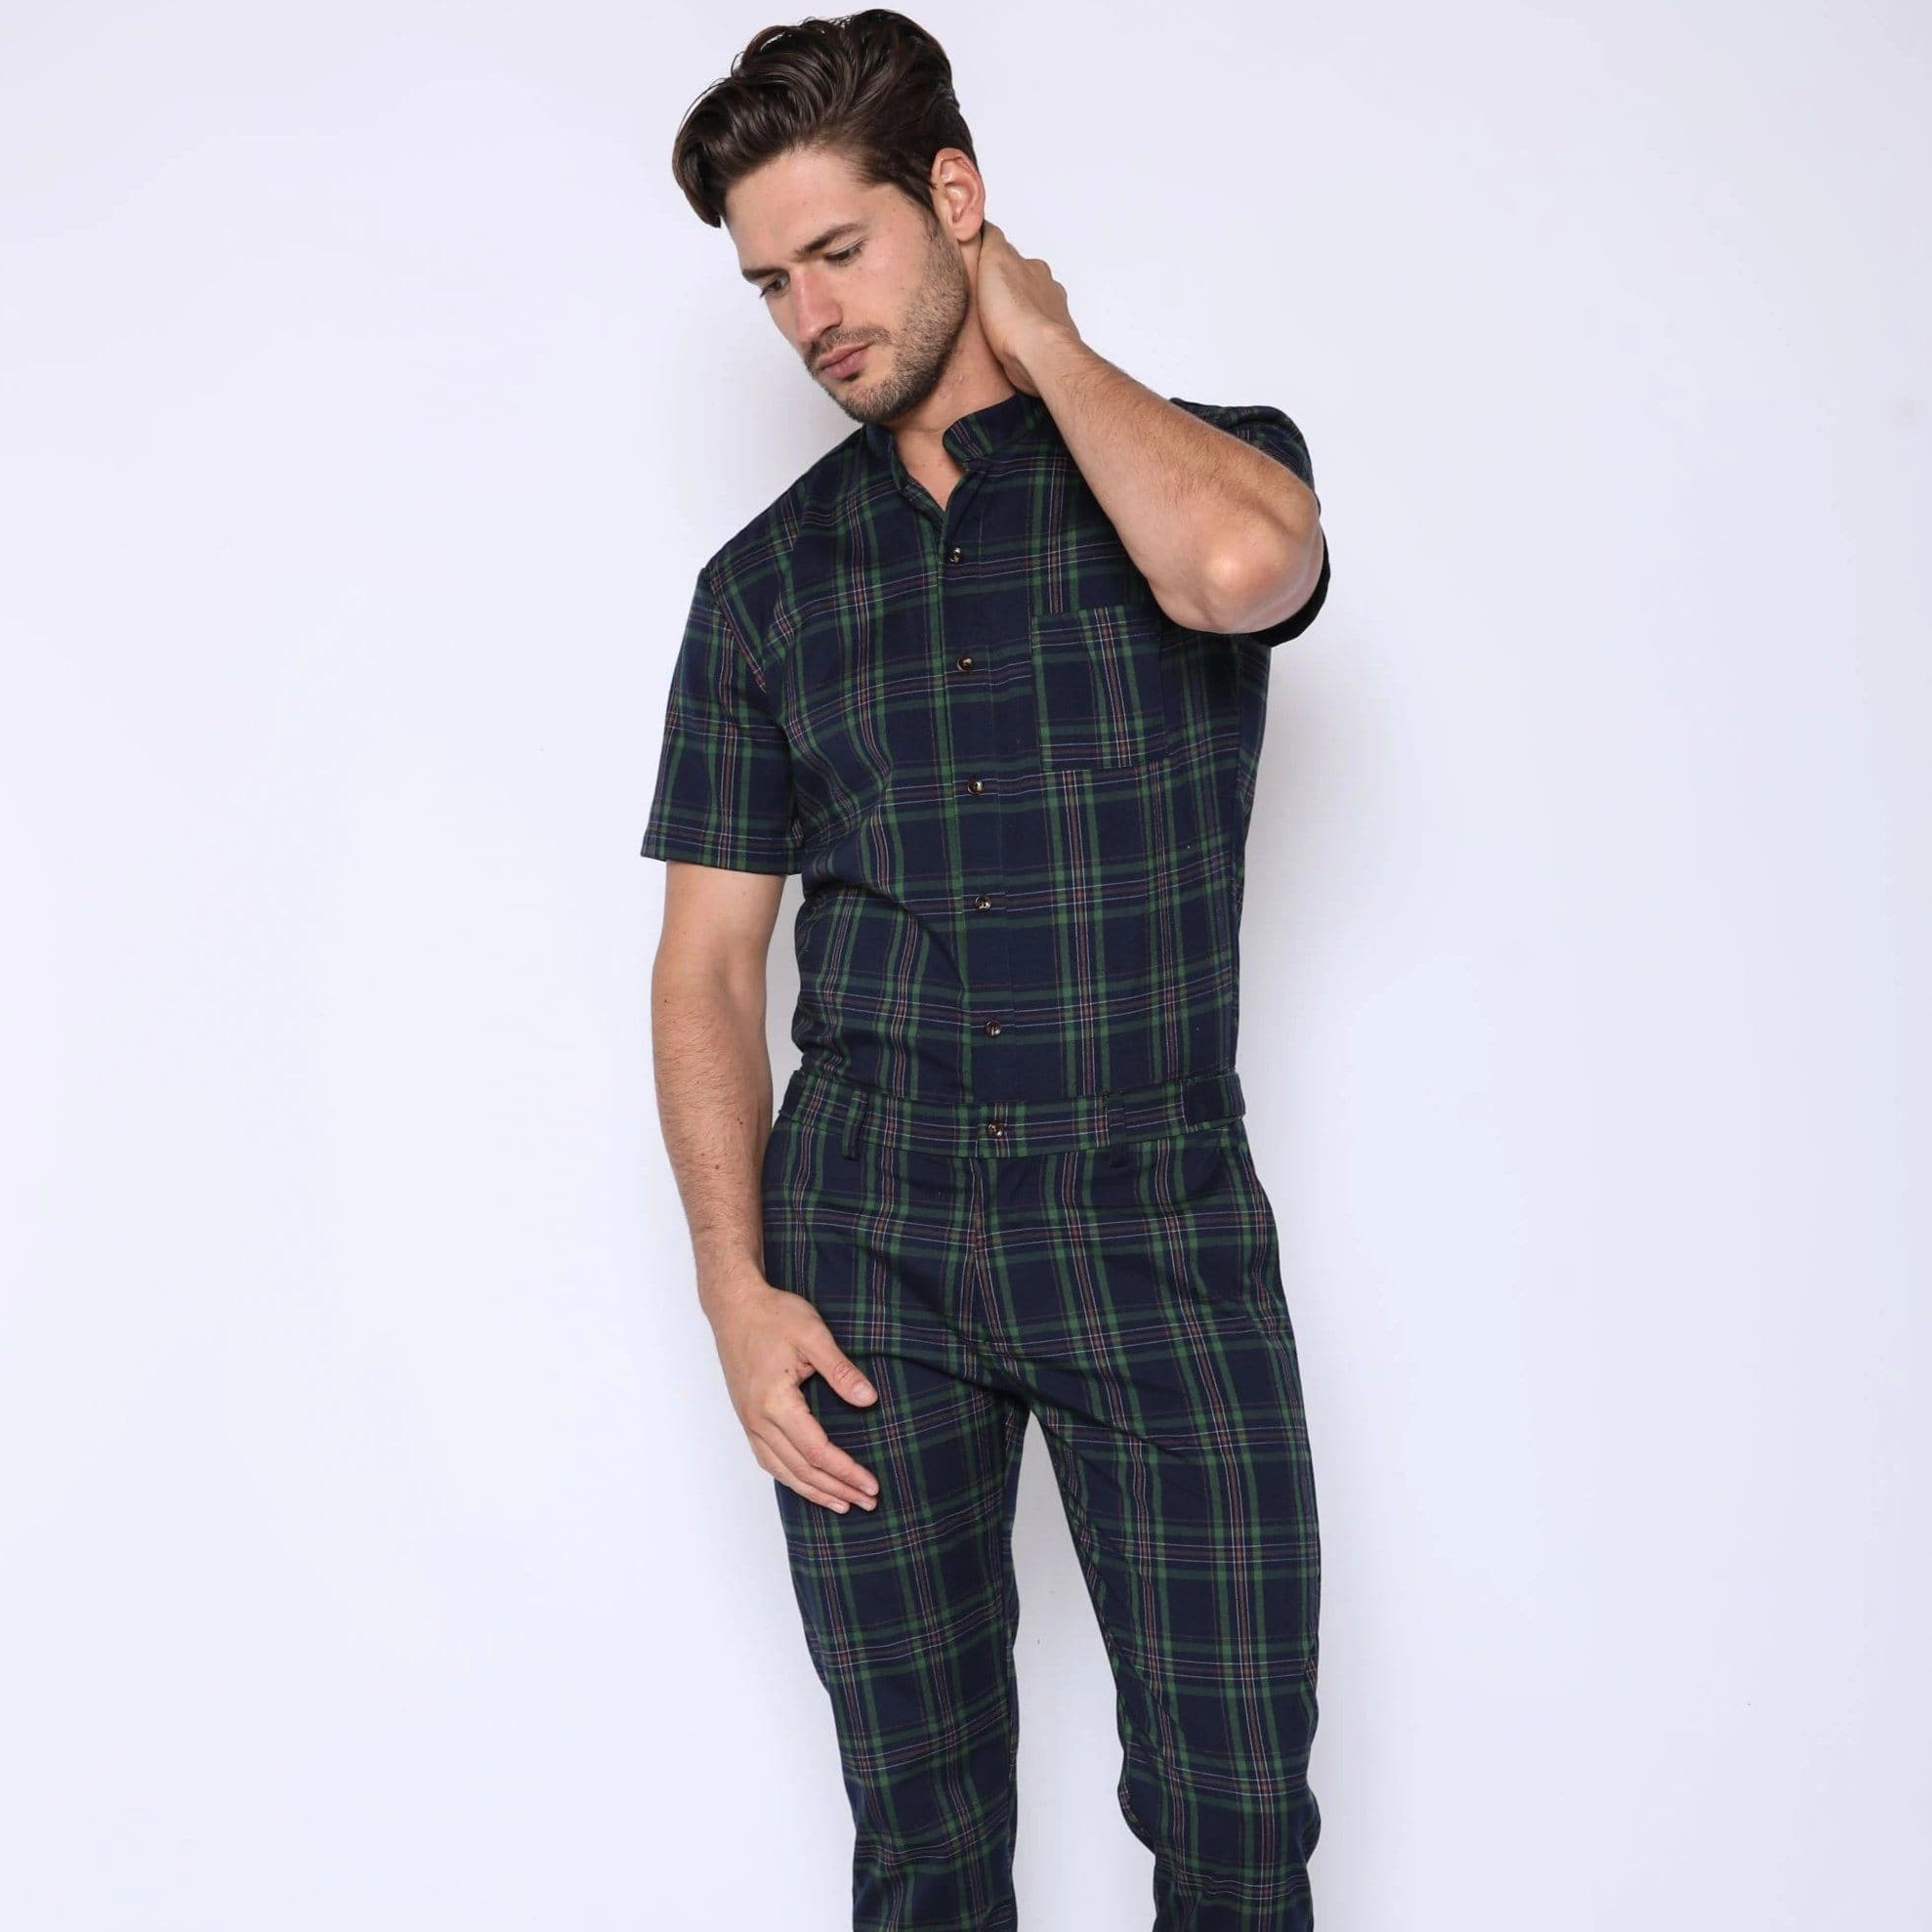 ST. NICK JUMPSUIT - RomperJack, Mens Jumpsuit - Male Romper